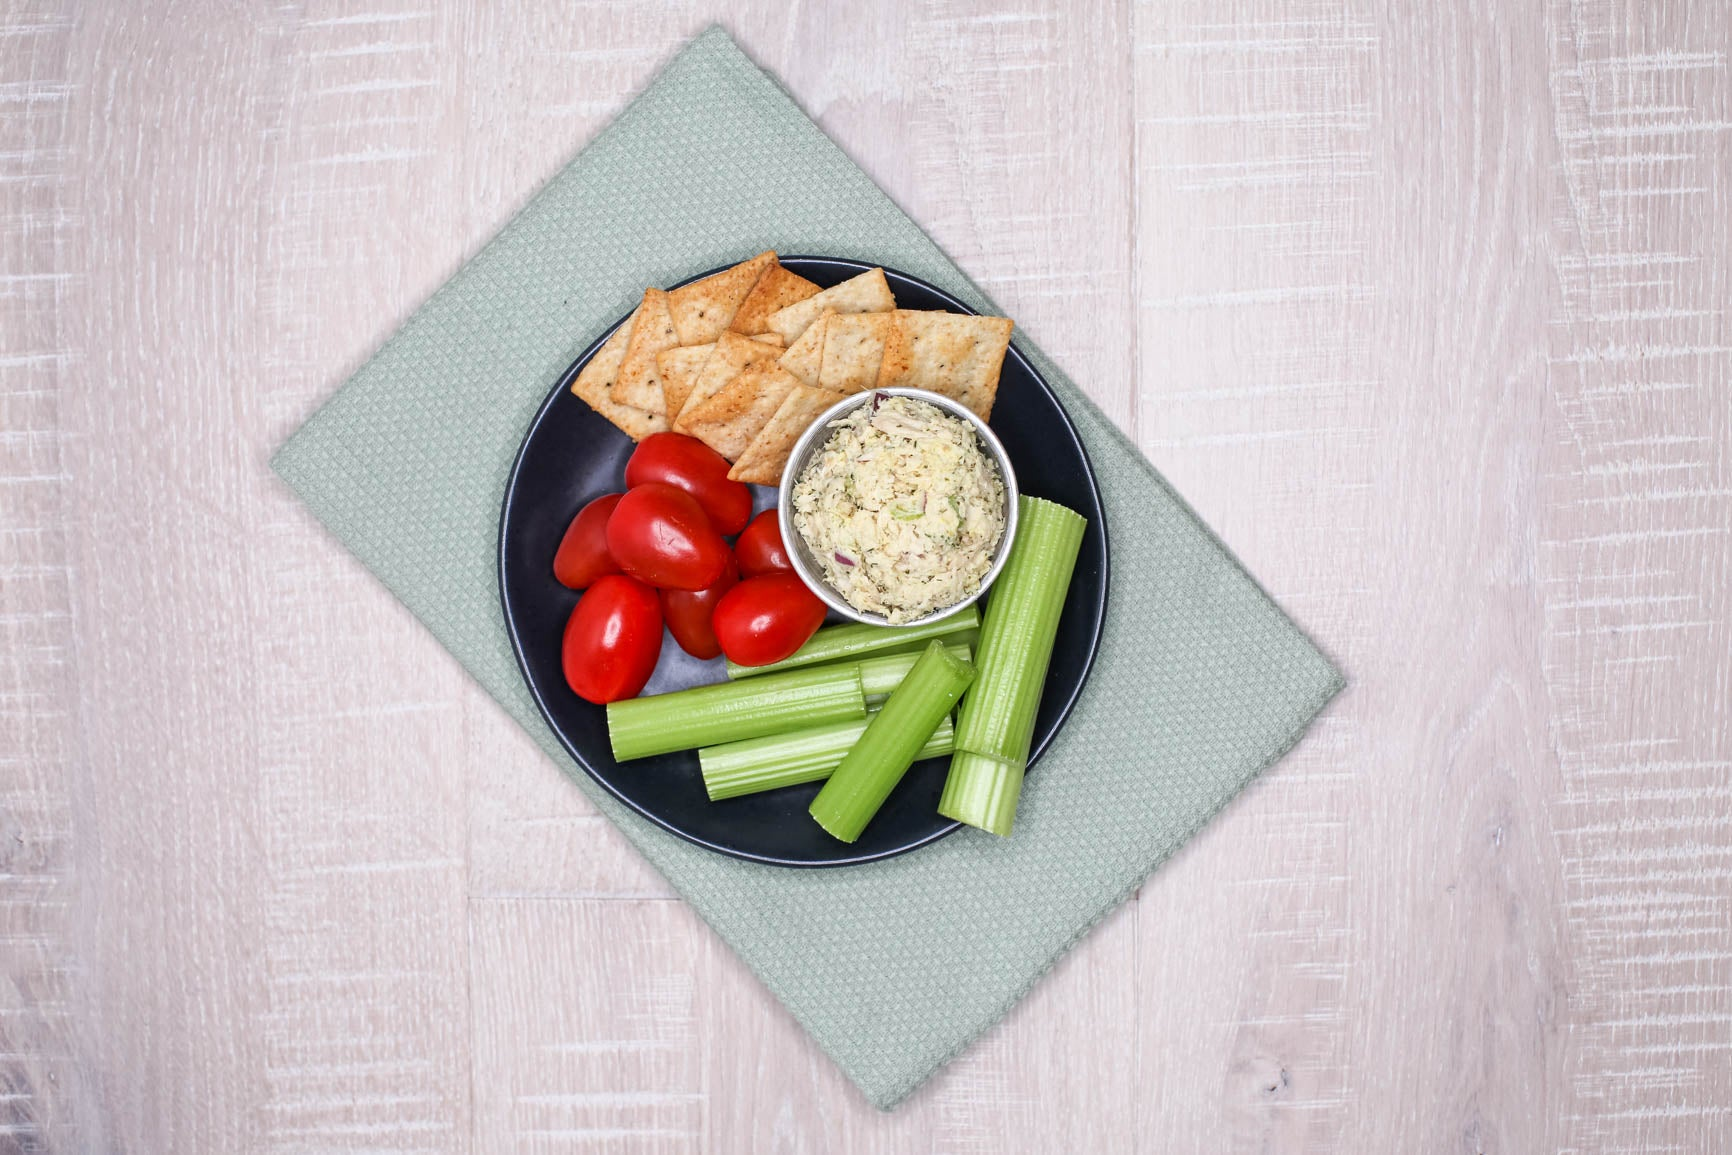 Snack Box - Tuna Salad, Veggies & GF Crackers